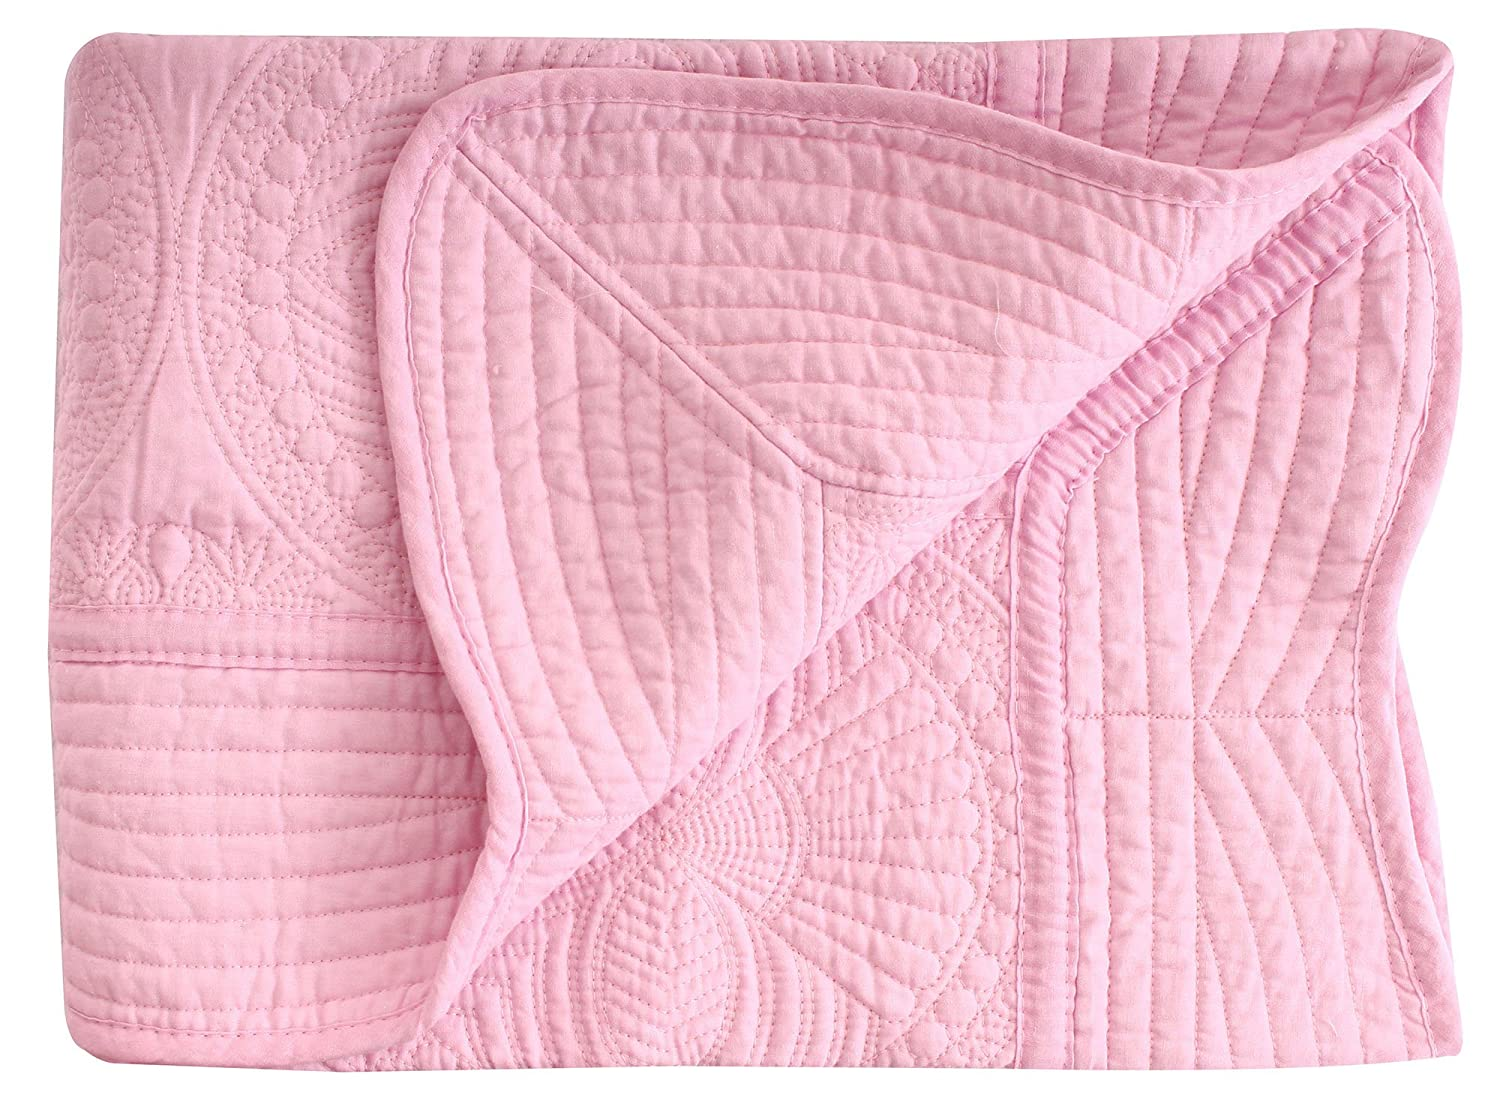 AshopZ Lightweight All Weather Embossed Soft Quilt for Baby Infant Royal 36 inches x48 inches